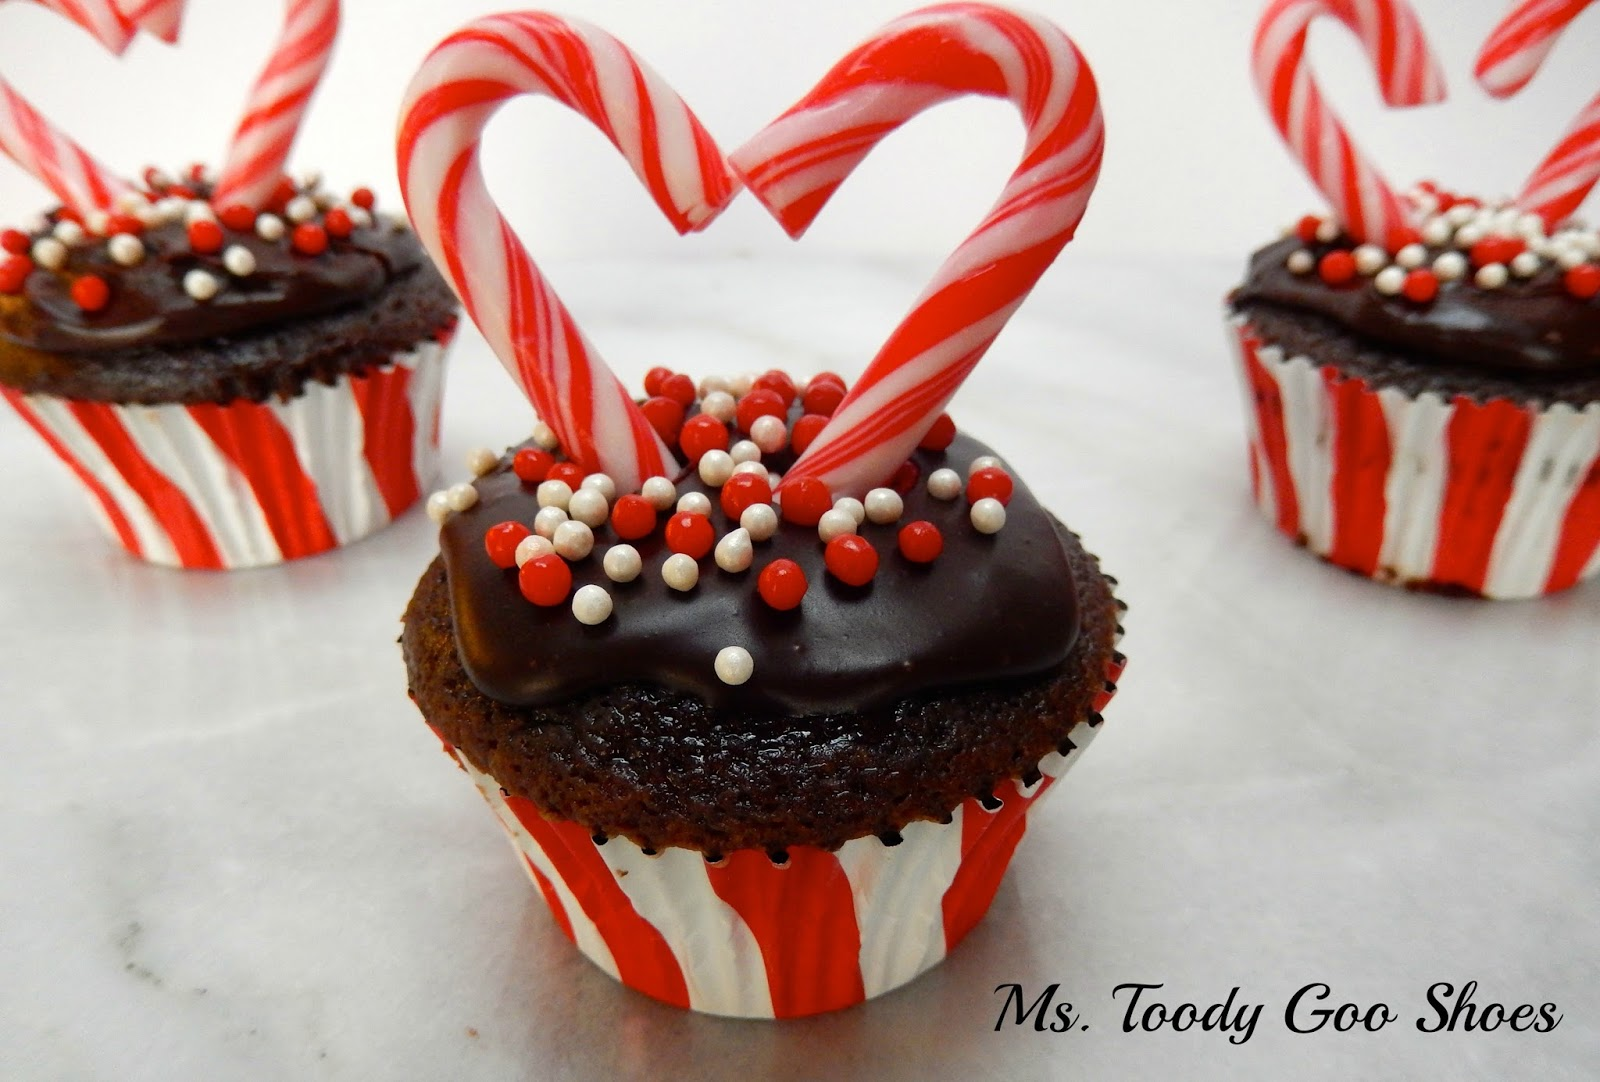 Chocolate Mint Cupcakes...an easy Valentine's Day treat  ---by Ms. Toody Goo Shoes